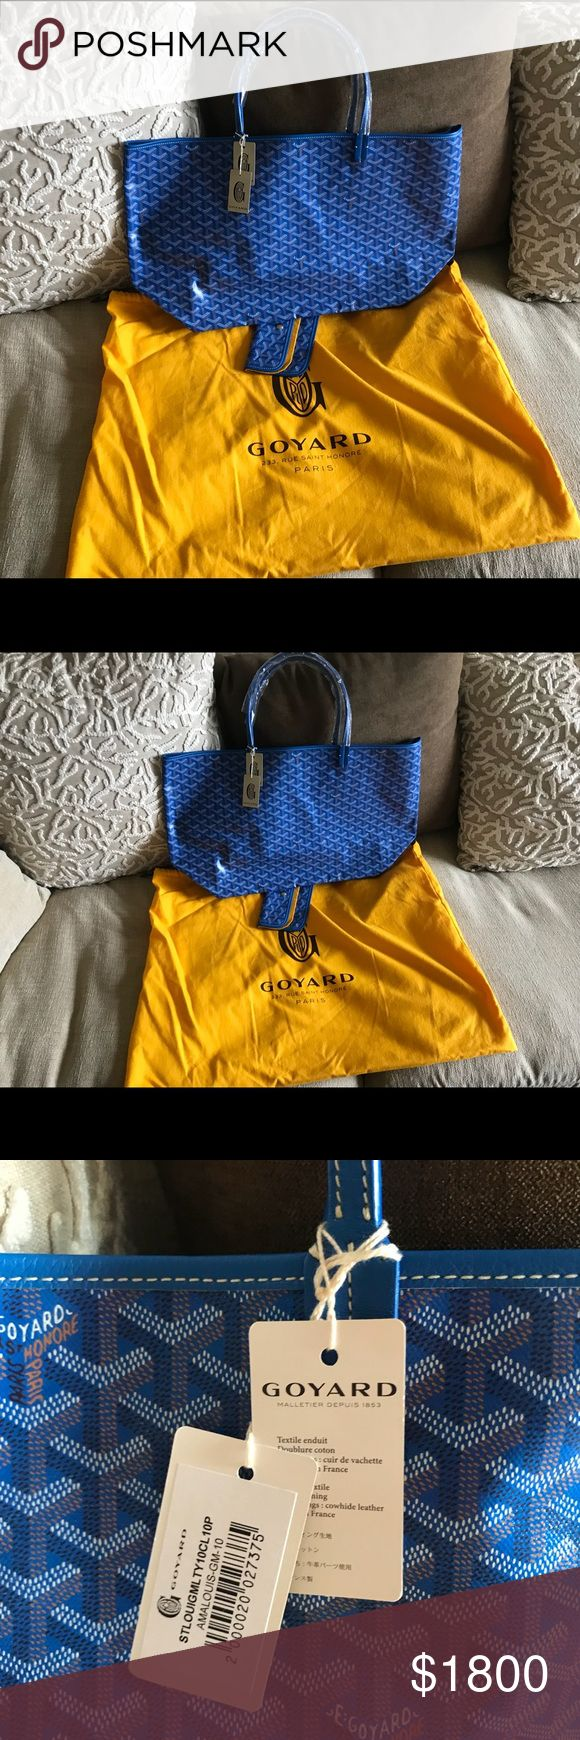 Goyard st. louis gm large shoppin bag, blue Bought from Barneys New York, color is Lt Blue. Original price is $1795 pre tax. Brand new with tags and dust bag. Goyard Bags Totes